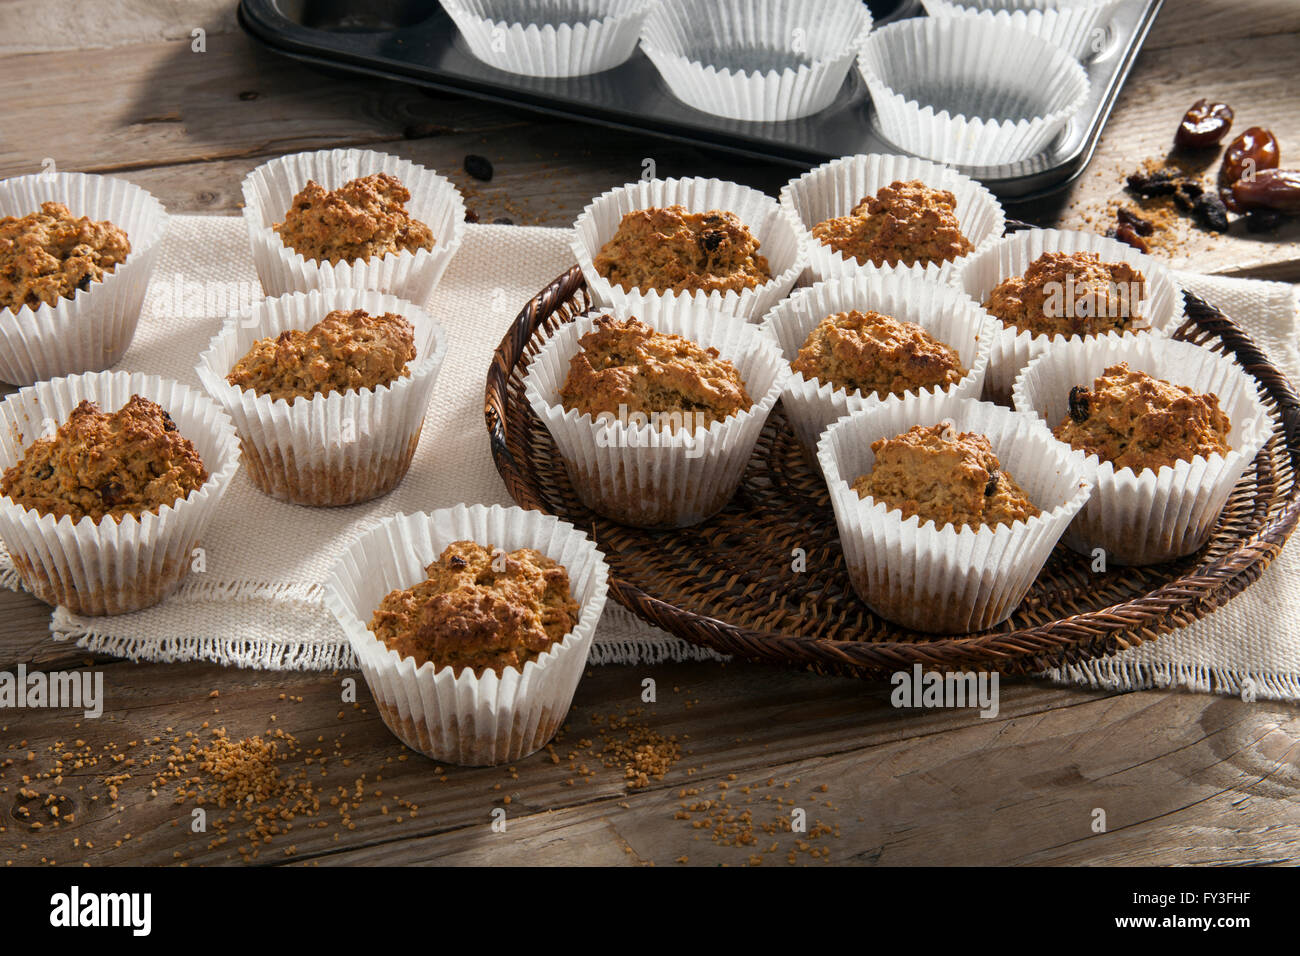 Sucanat oat muffins - Stock Image